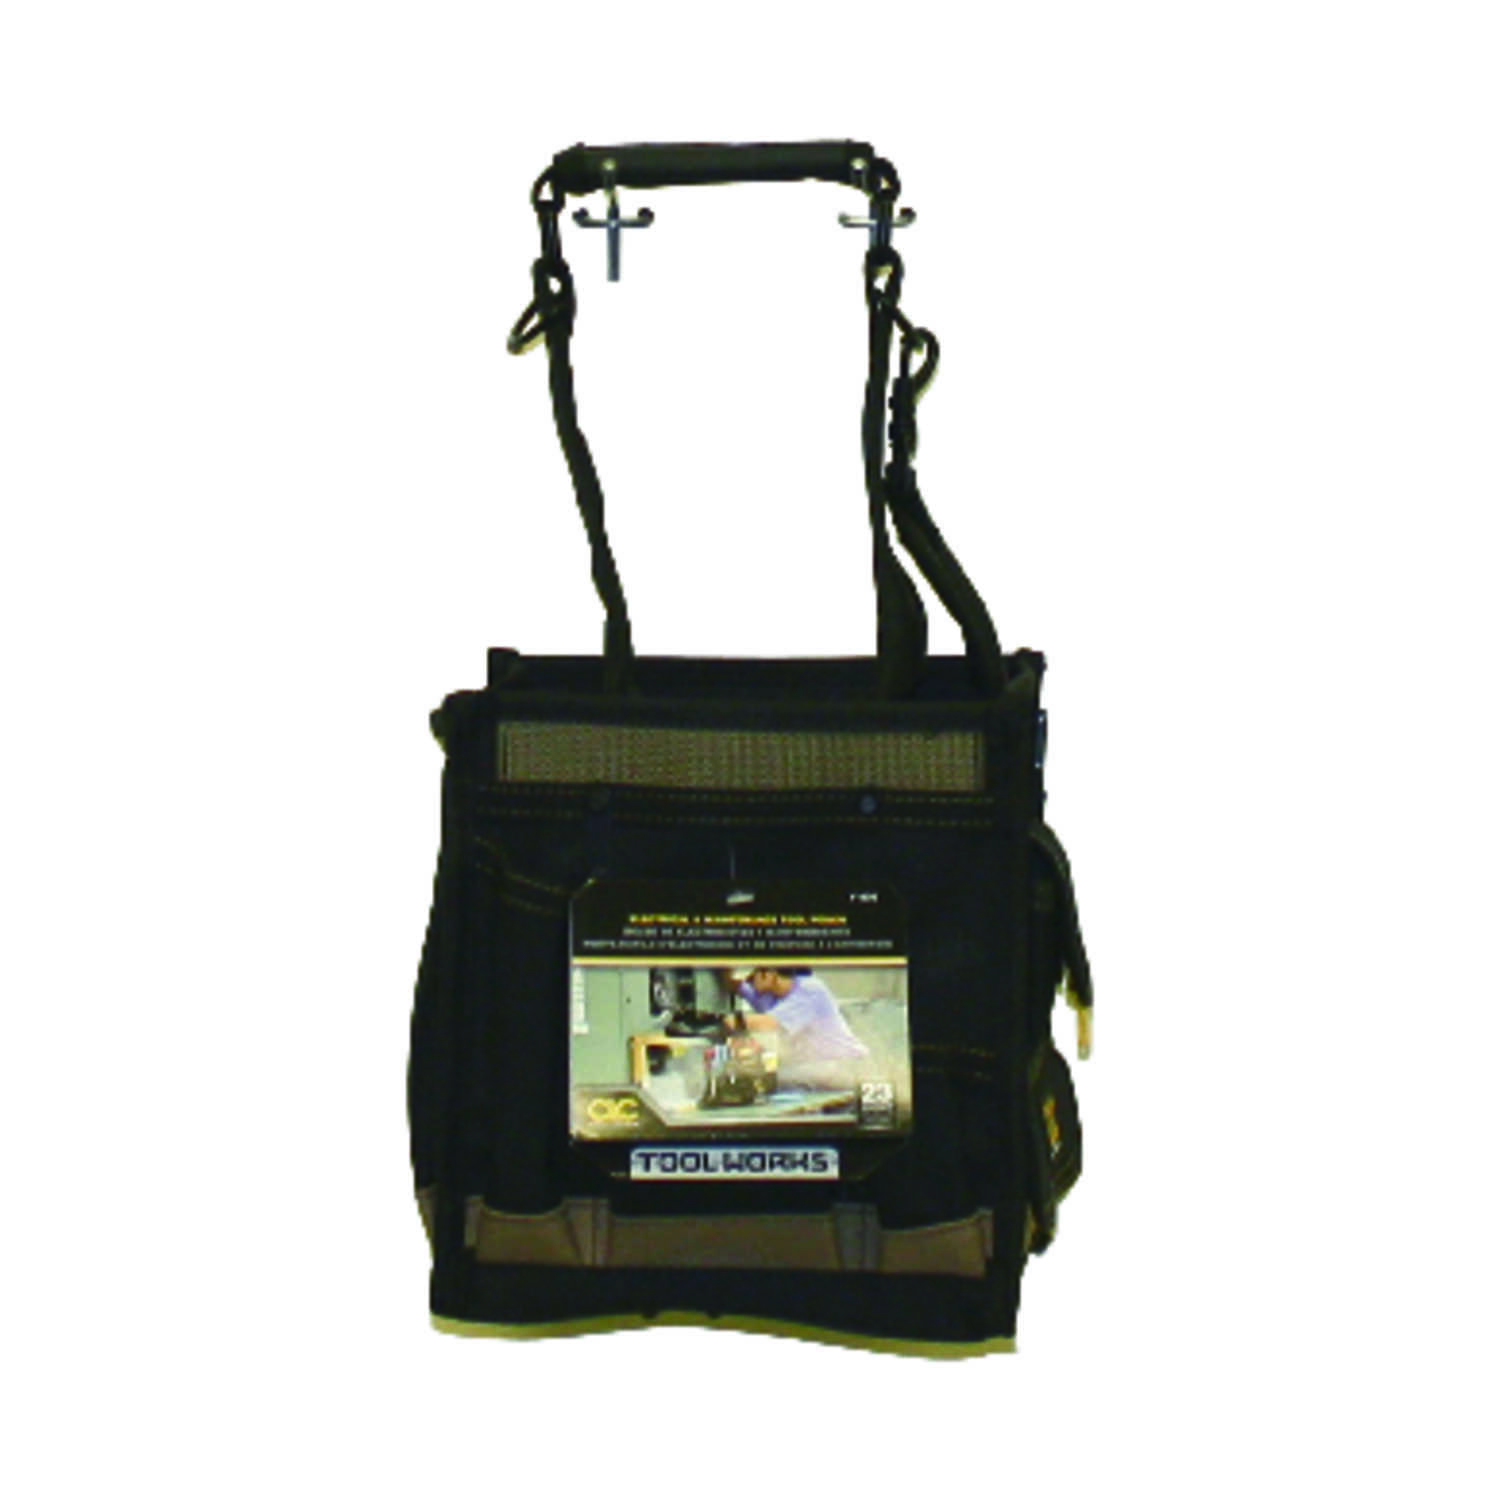 CLC Work Gear  8.25 in. W x 16.25 in. H Polyester  Tool Pouch  25 pocket Black/Tan  1 pc.